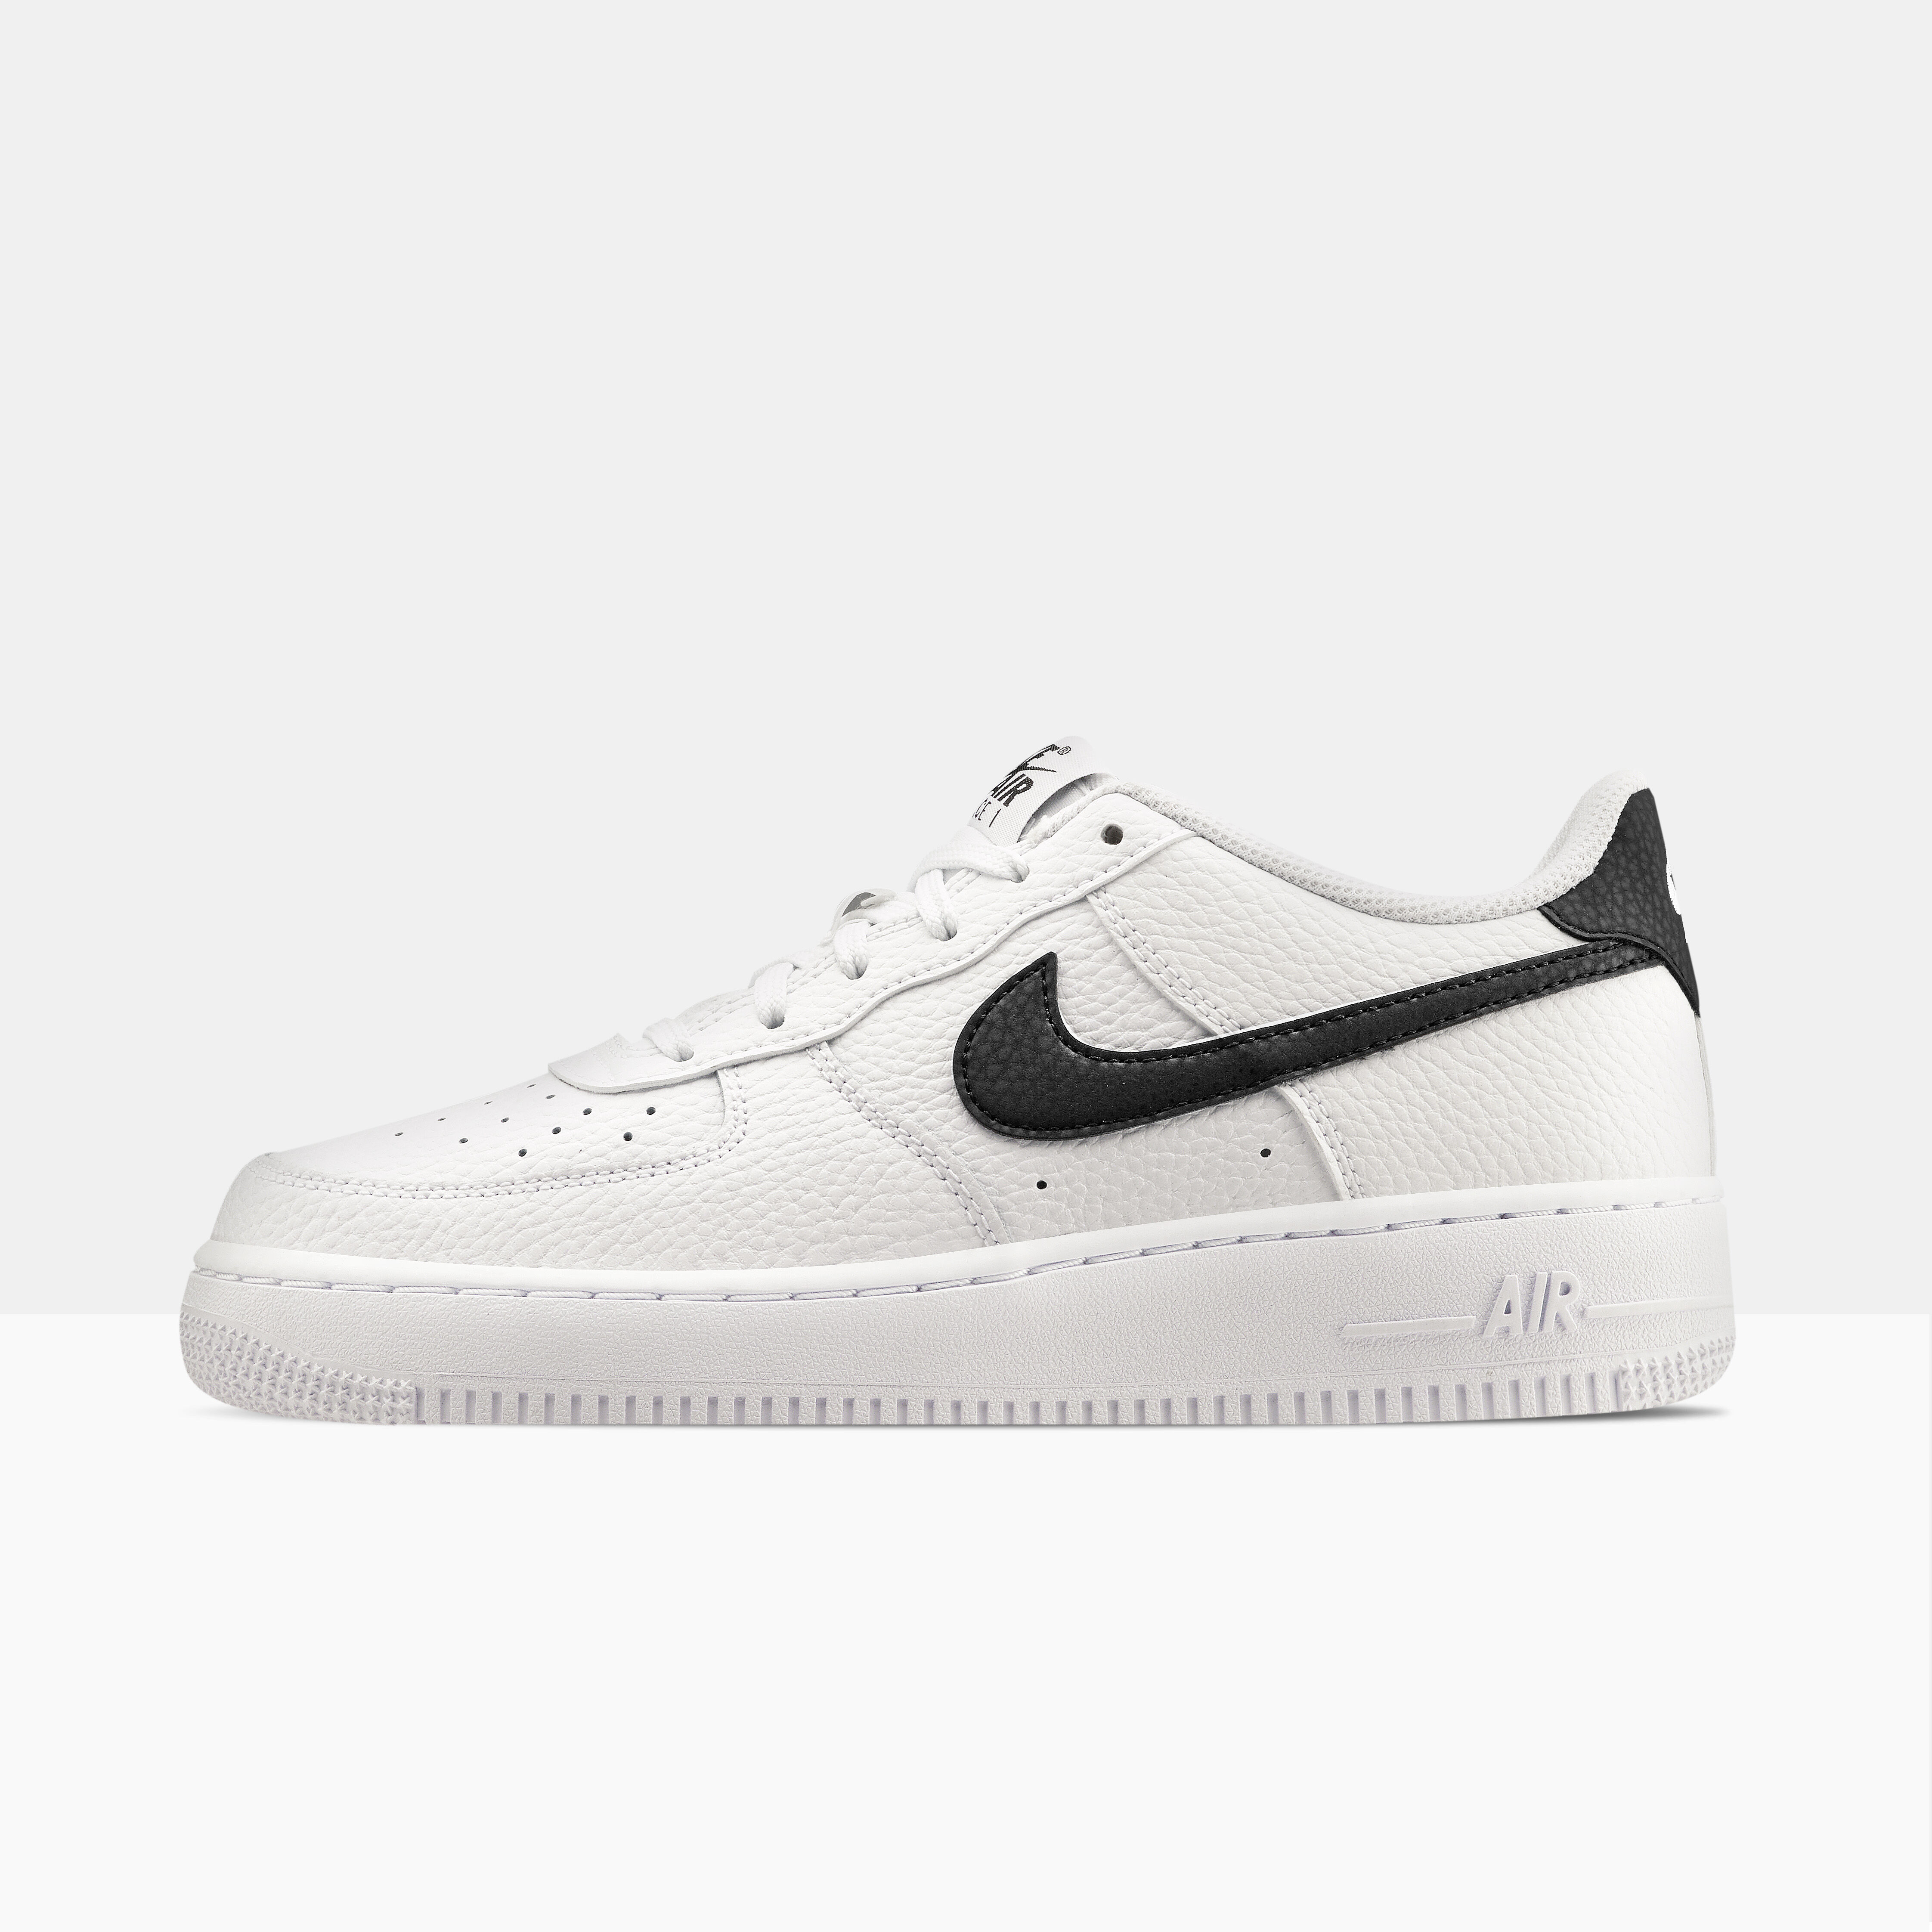 Nike Air Force 1 GS bianche e nere - AW LAB